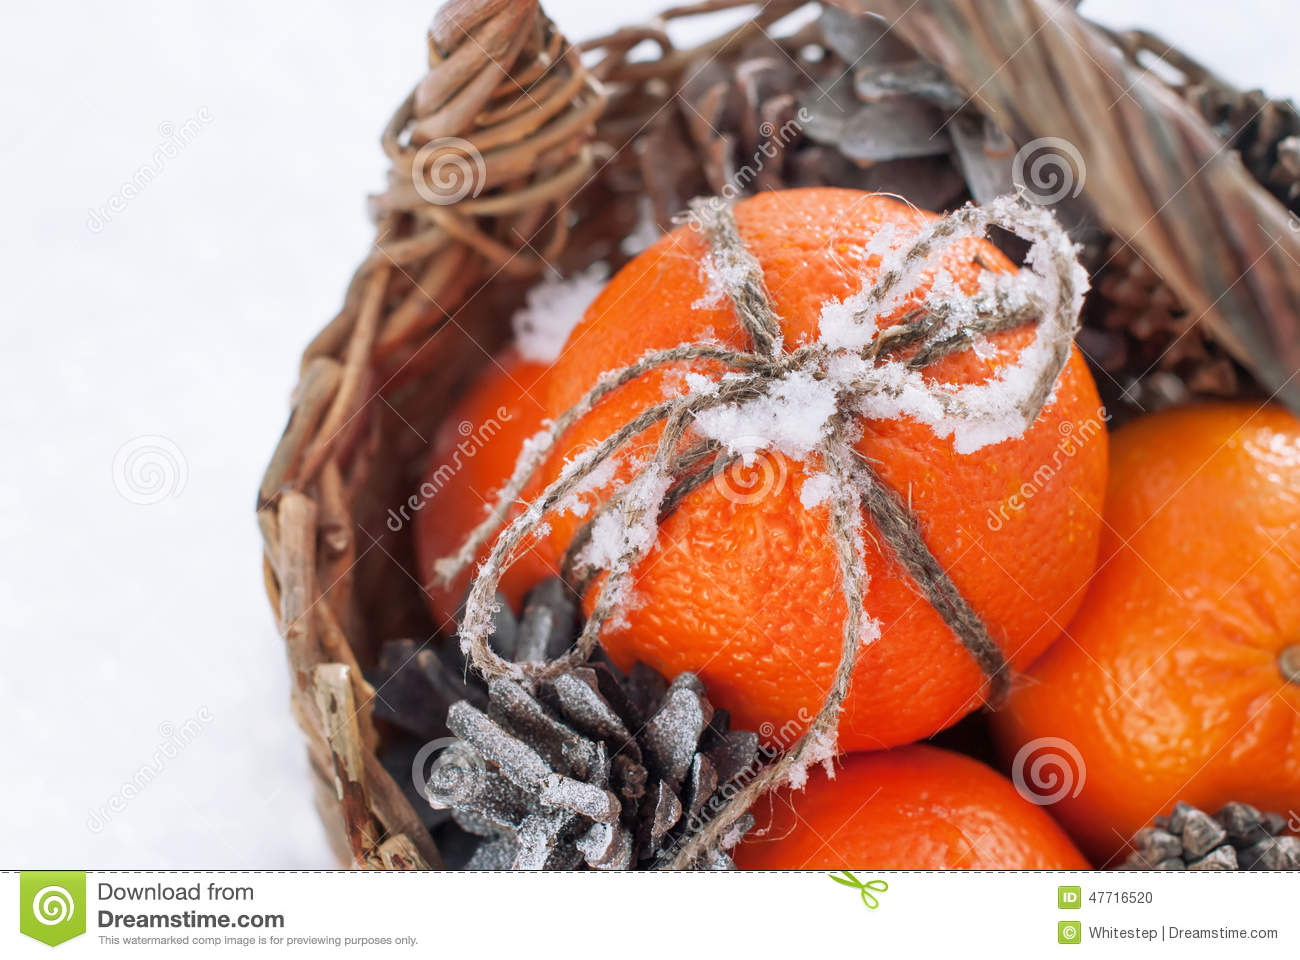 download sticky snow on a bow from cord christmas oranges stock photo image of - Christmas Oranges